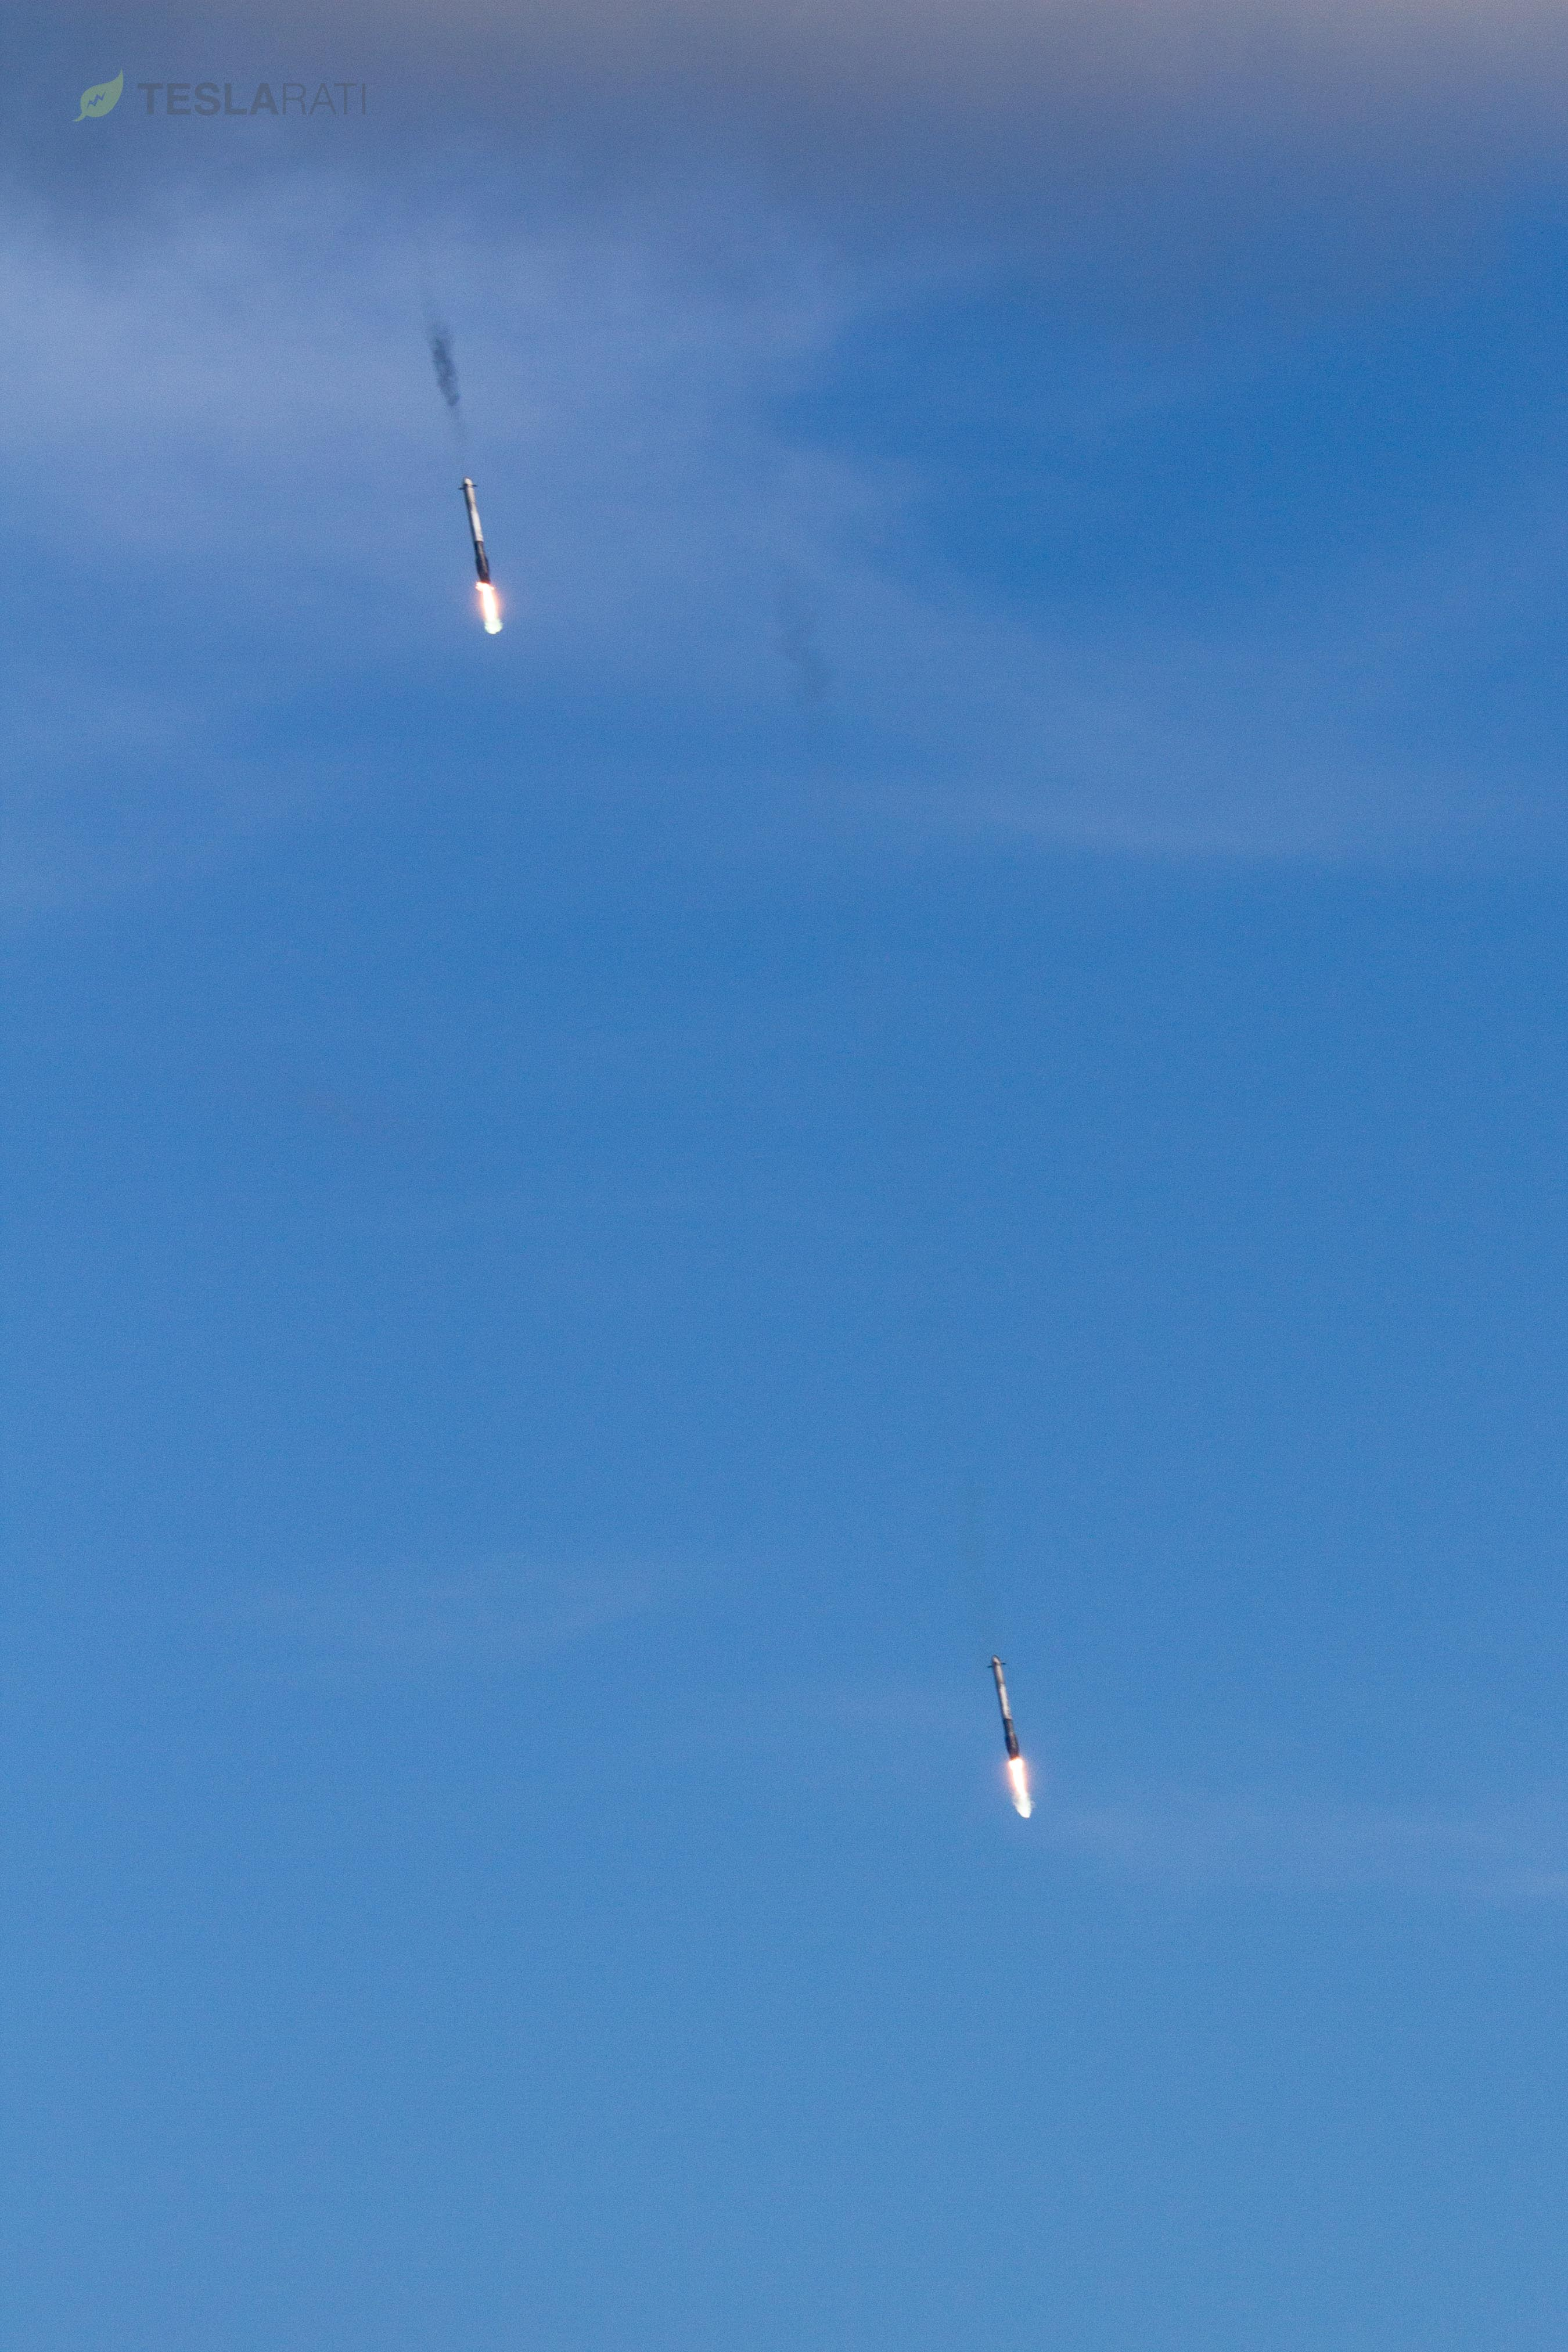 FH side booster reentry 1 (SpaceX)